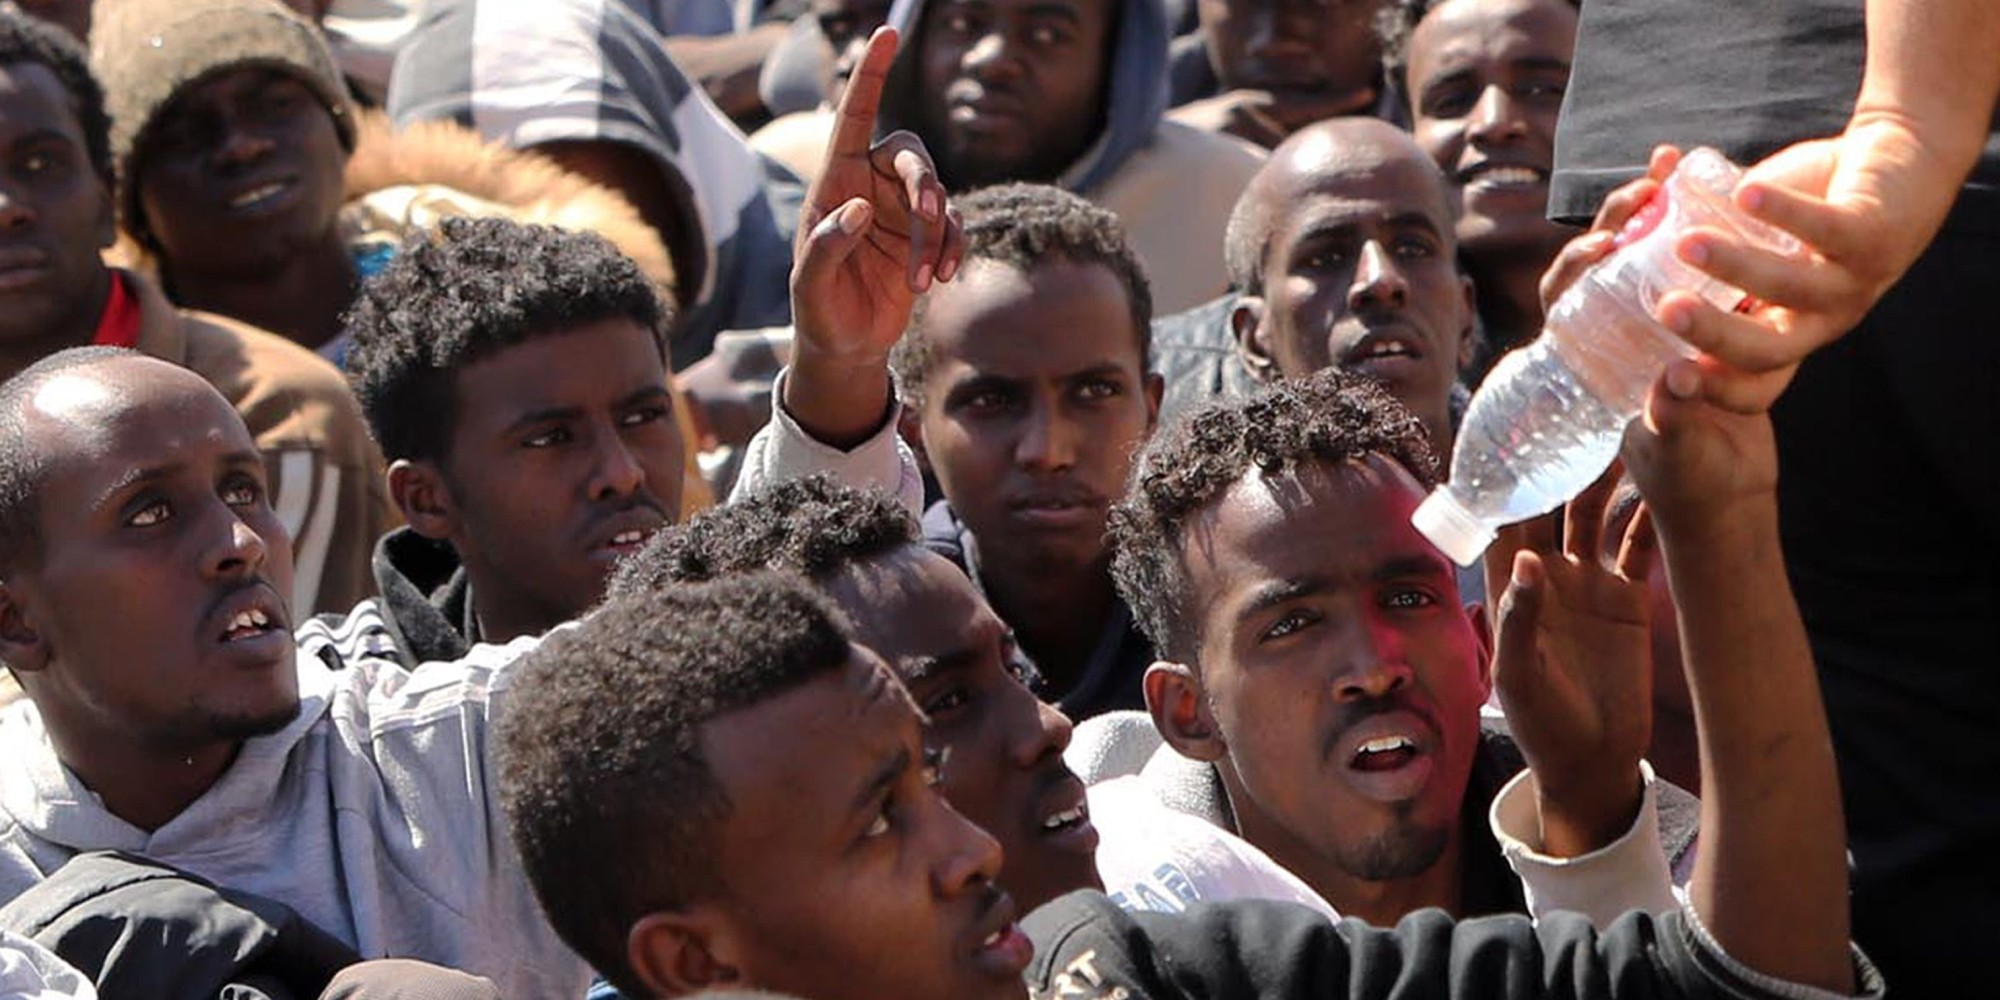 eu intervene with libya Why america was right to intervene in libya, and what went wrong after  with the onset of the refugee crisis in europe, and libya providing a major transit point for those trying to get to.